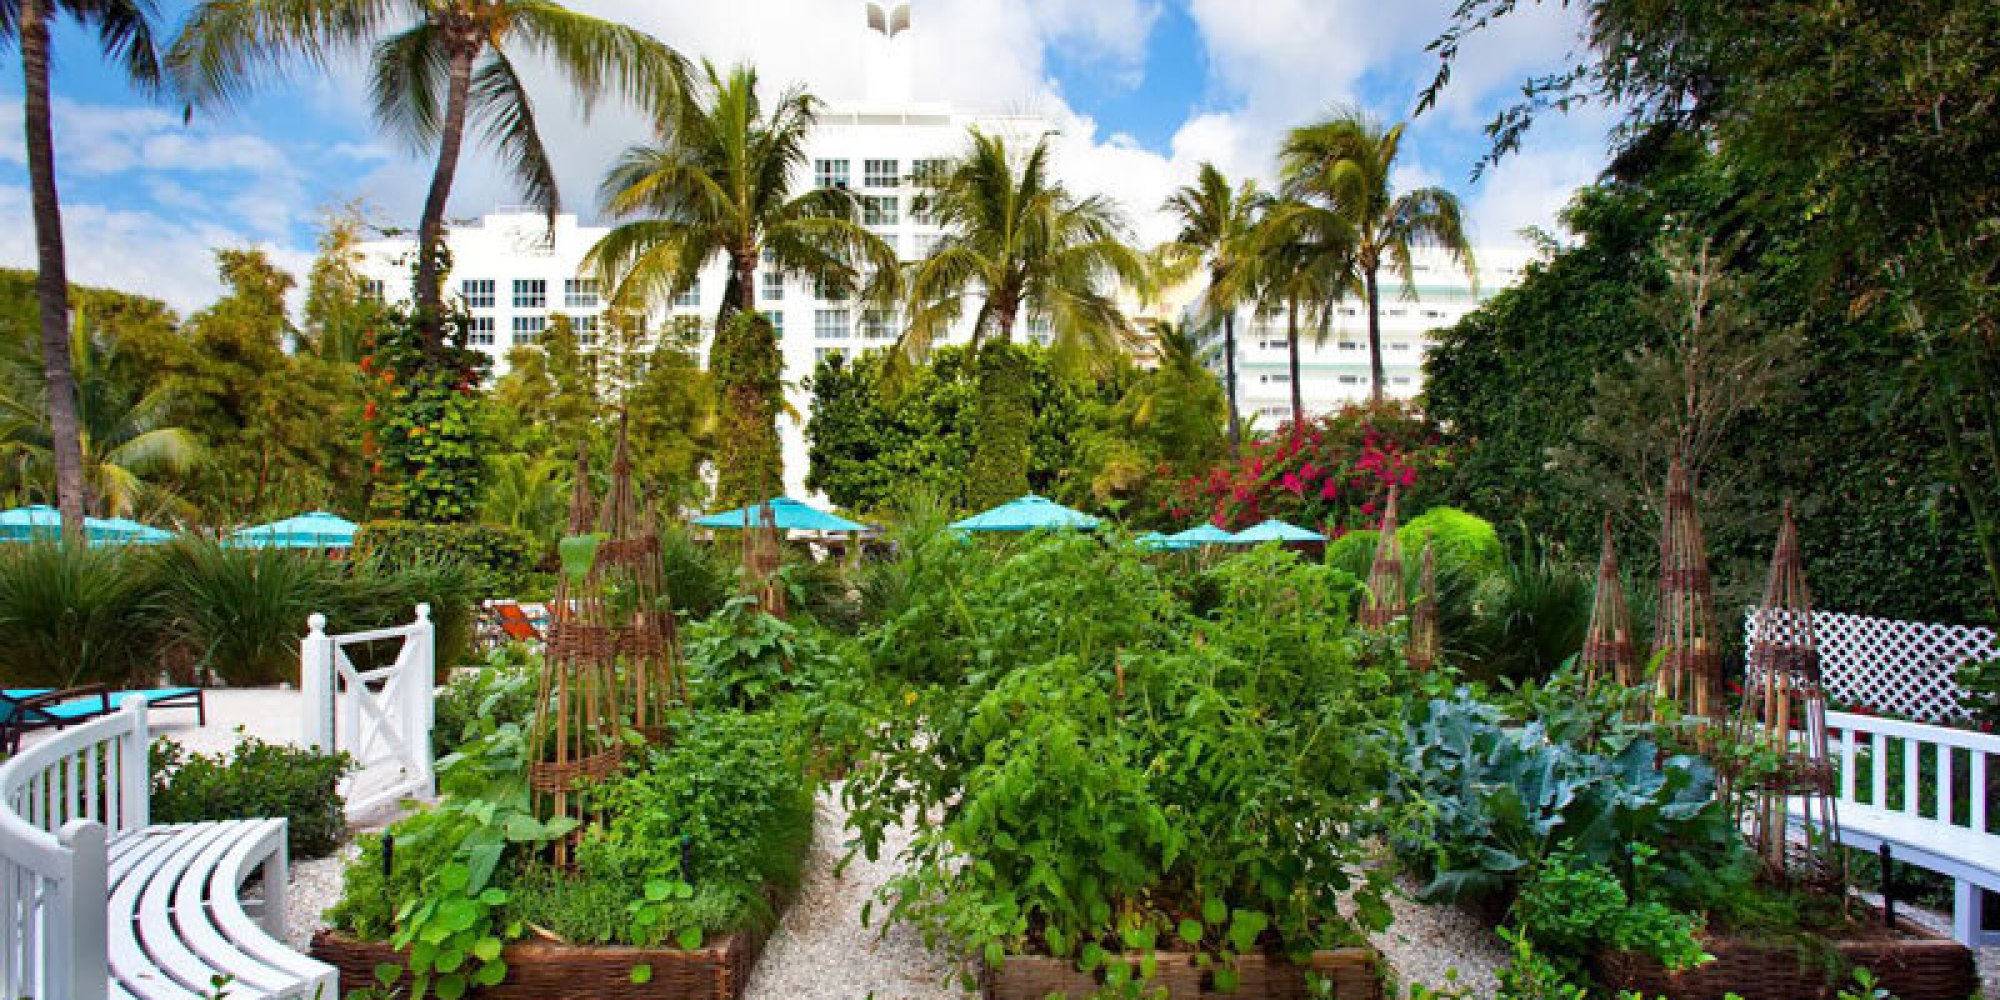 8 Of The World\'s Most Beautiful Hotel Gardens | HuffPost